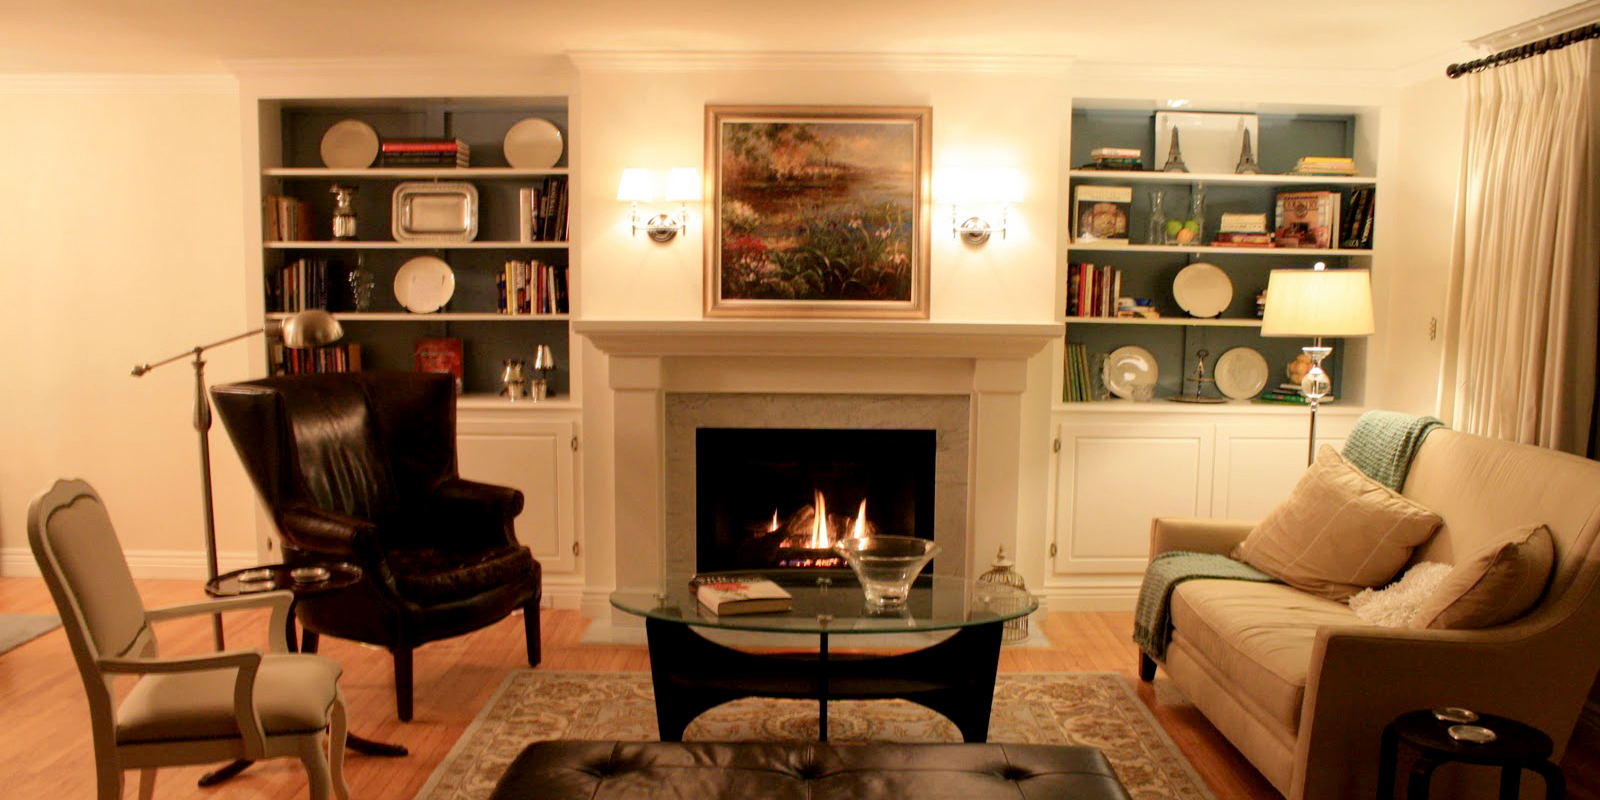 Bookshelves Living Room remodelaholic | living room remodel, adding a fireplace and built